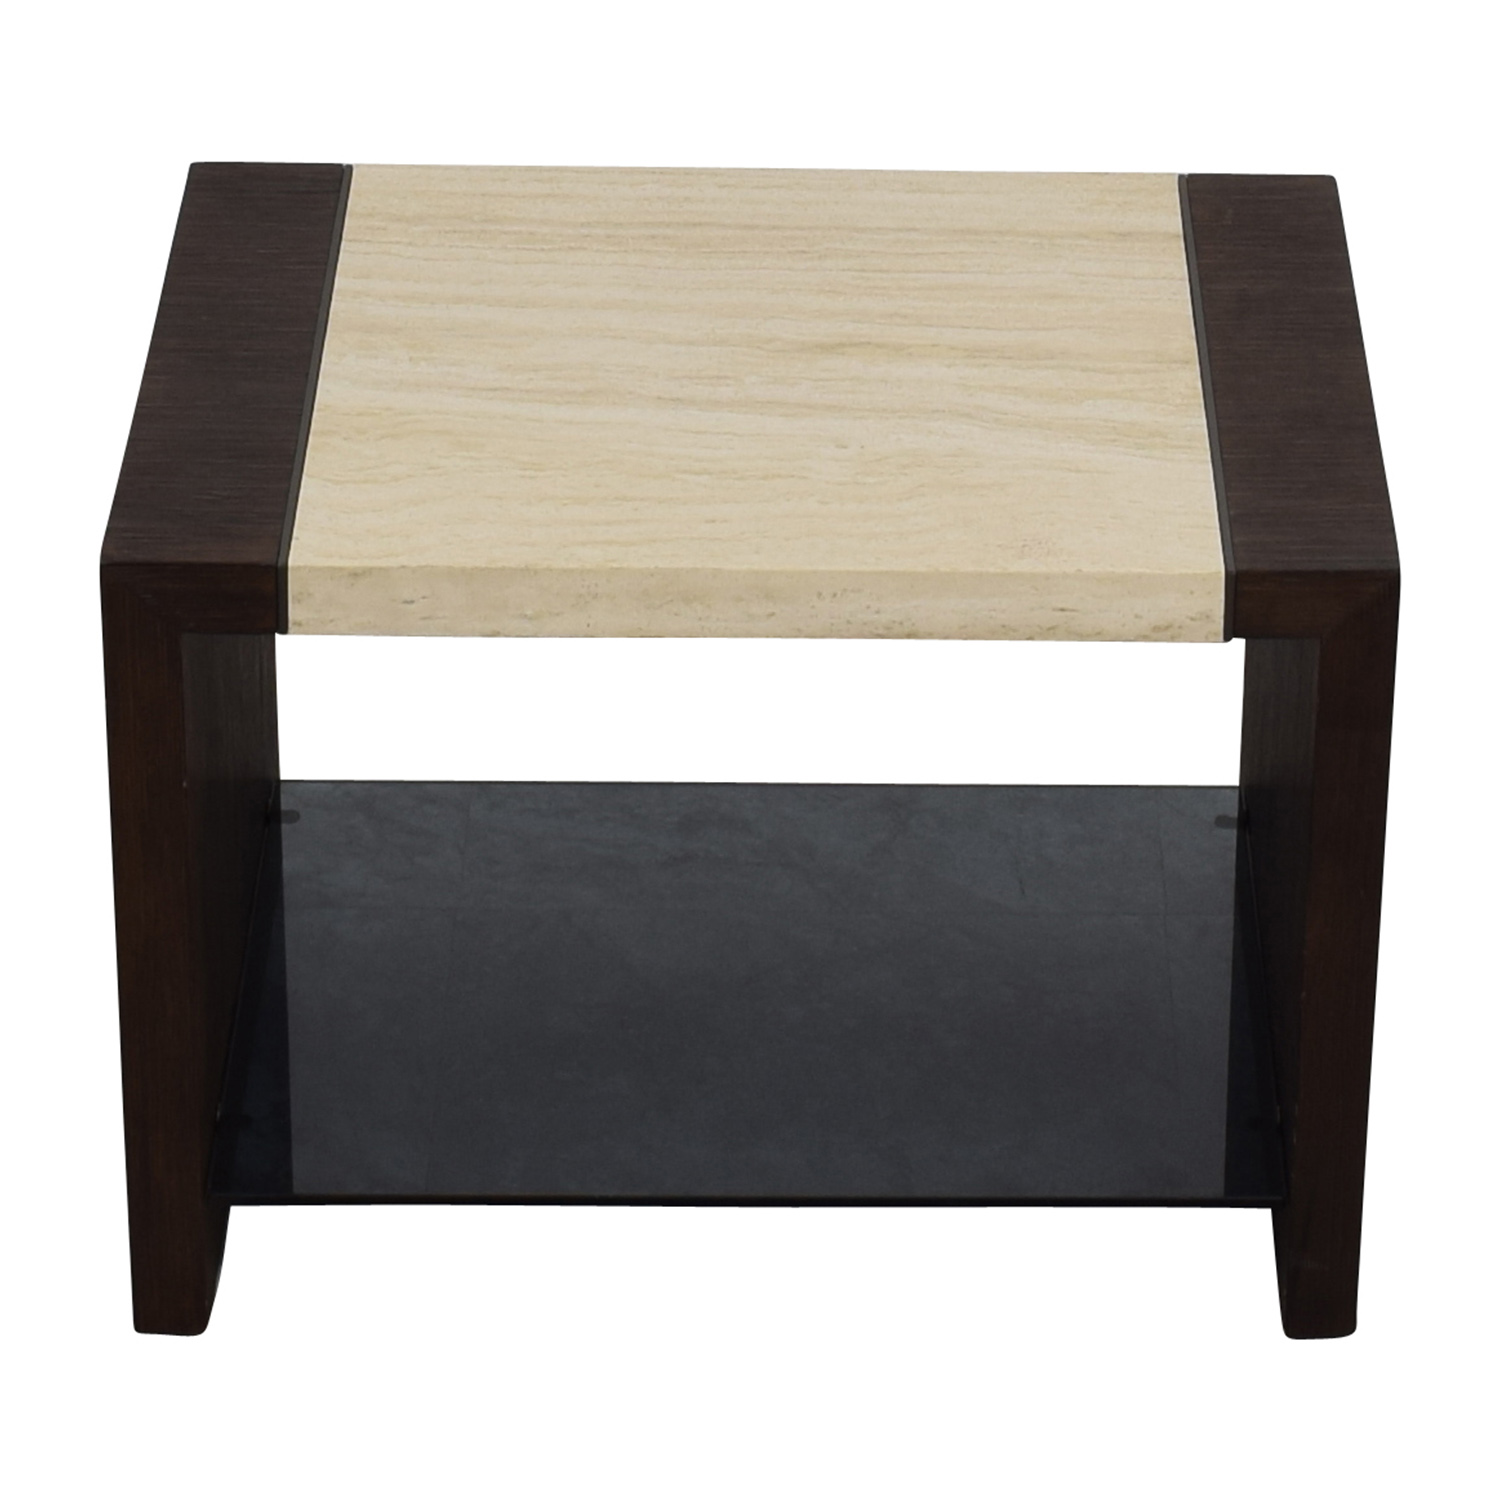 Calvin Klein Calvin Klein Wood and Stone End table second hand